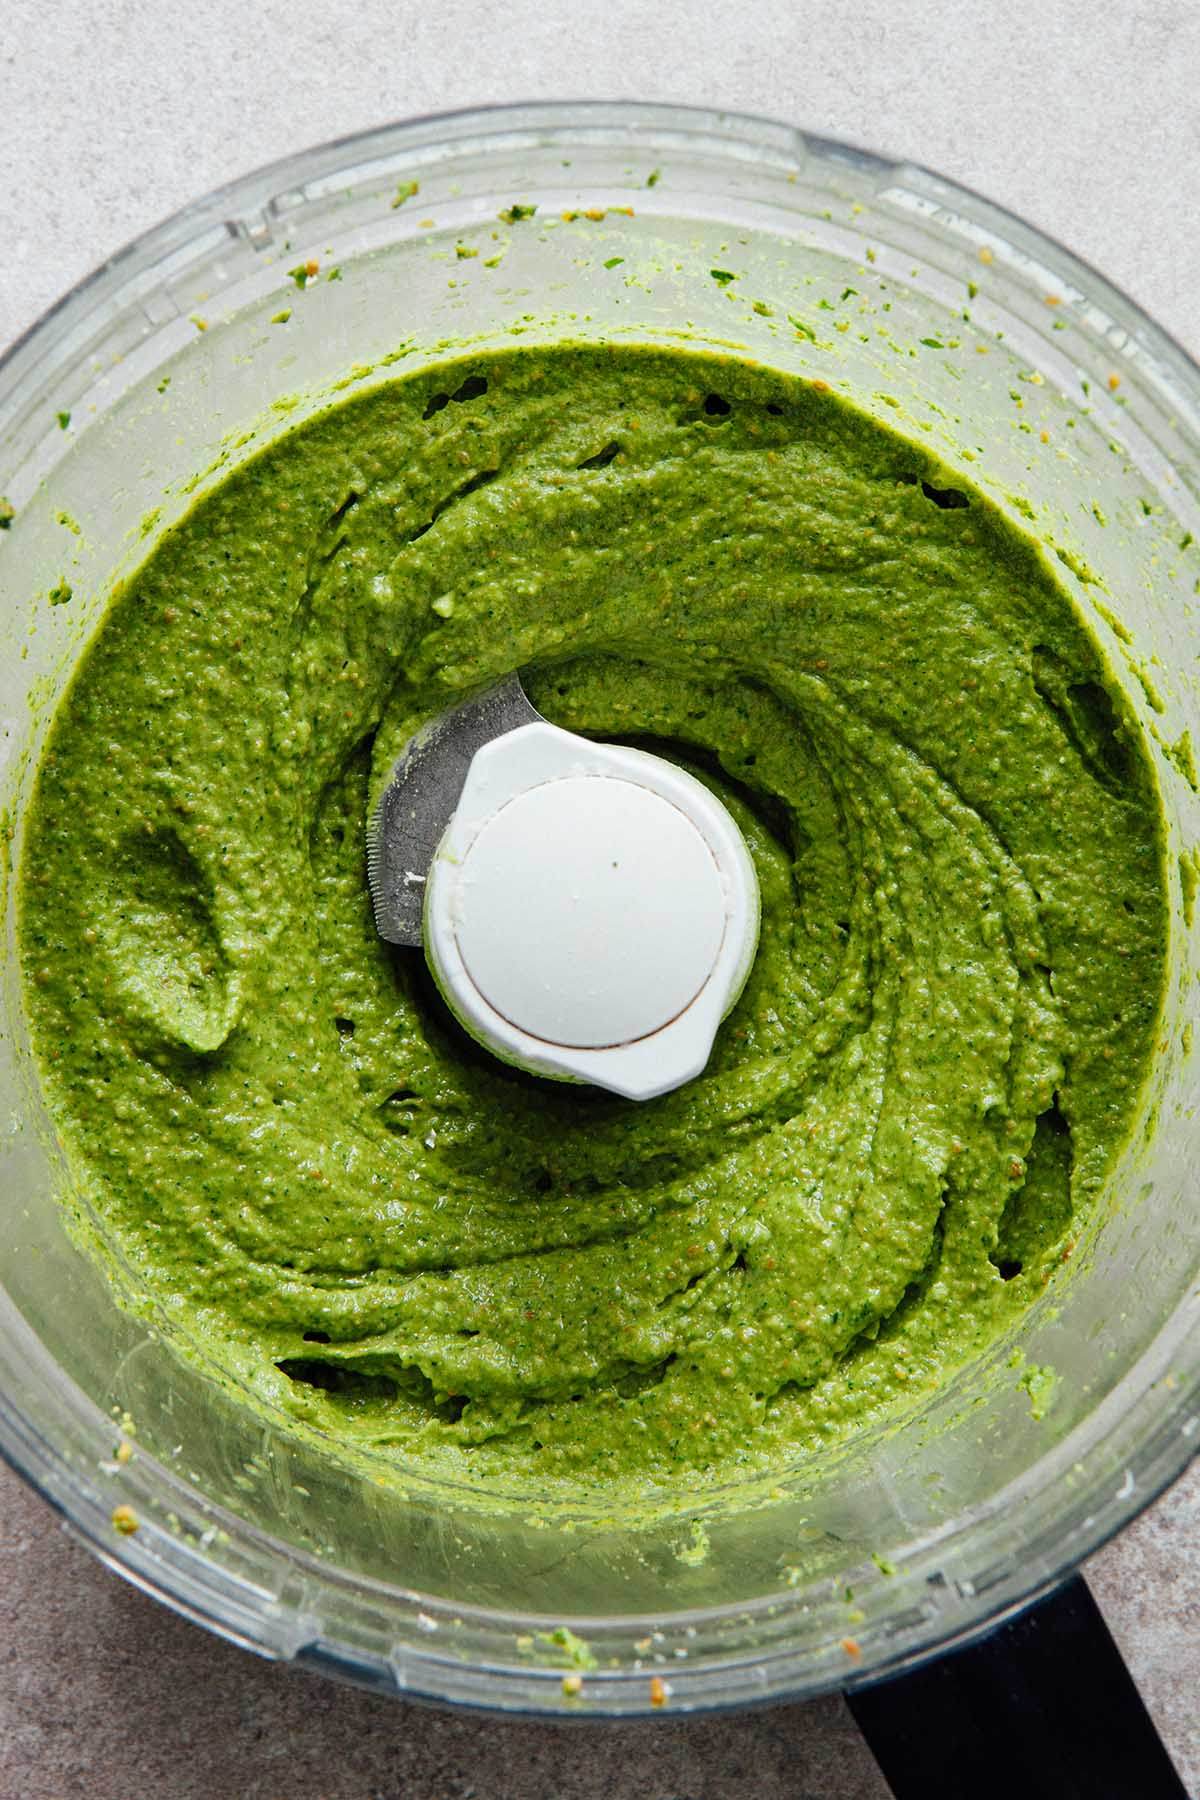 Pesto in the bowl of a food processor after the olive oil has been slowly dribbled in.